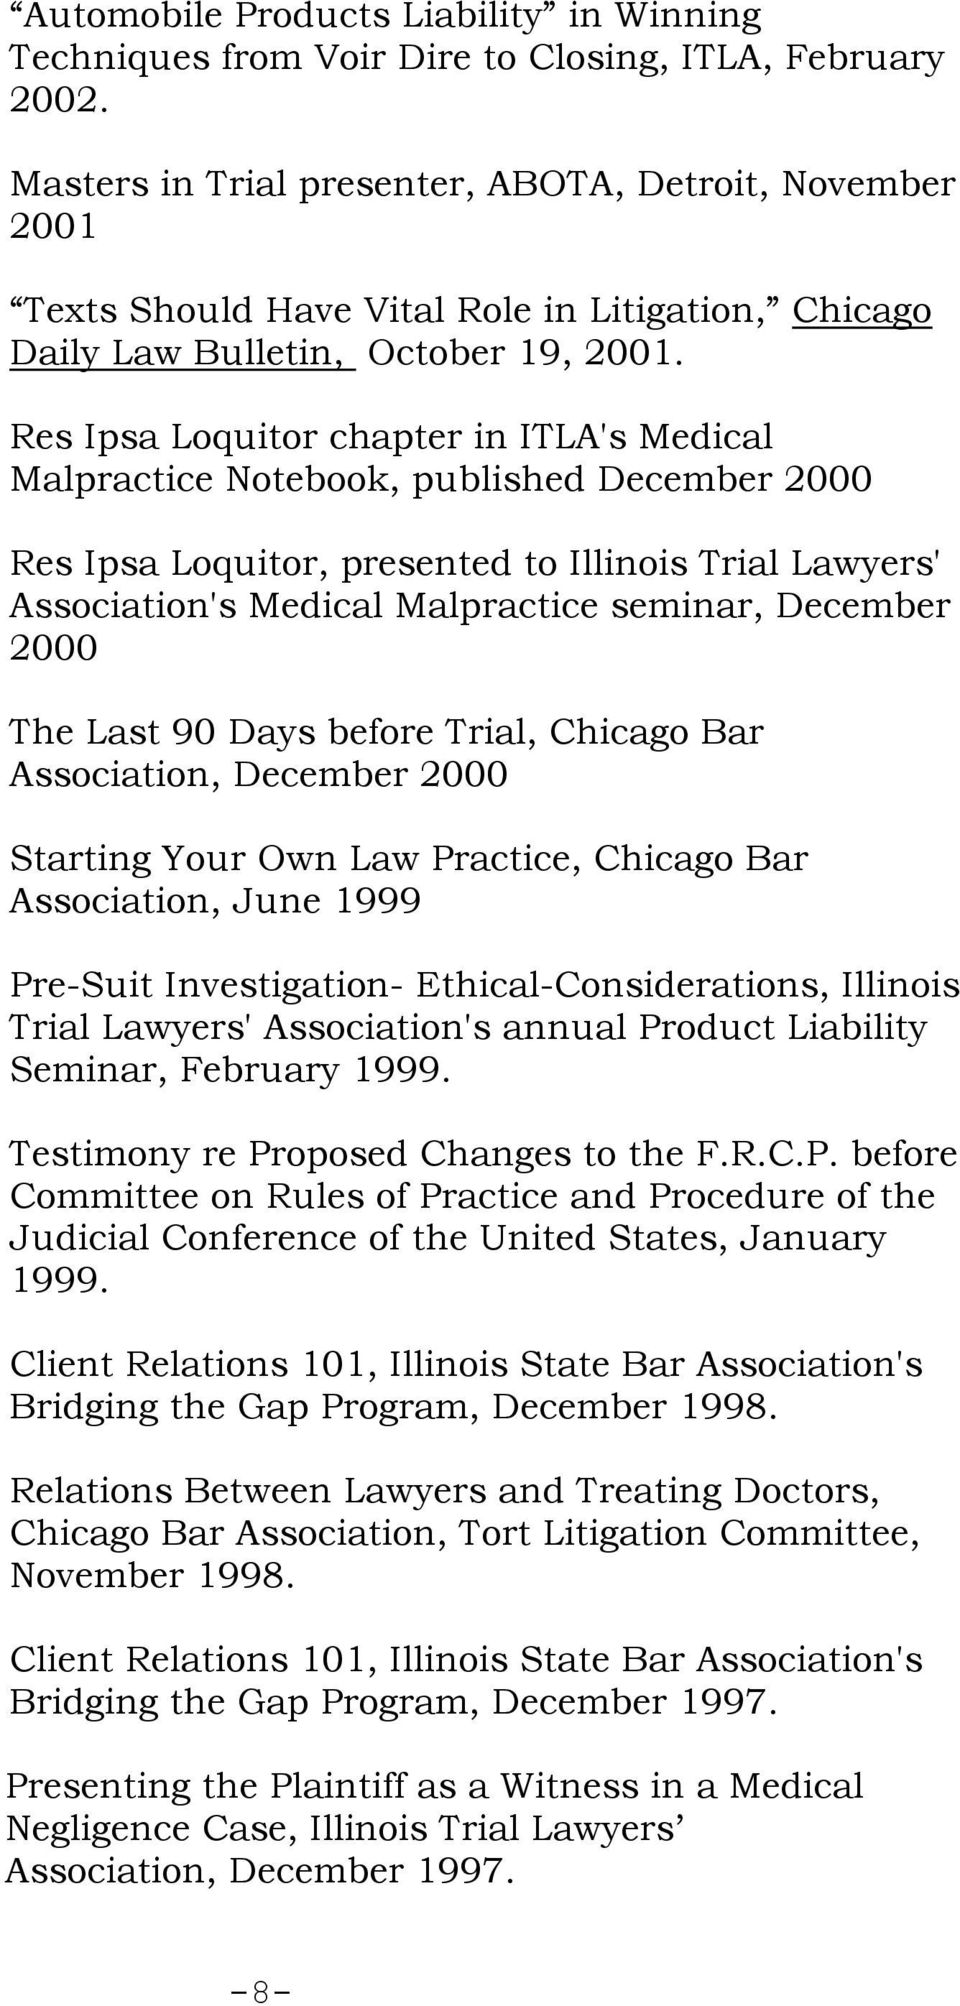 Res Ipsa Loquitor chapter in ITLA's Medical Malpractice Notebook, published December 2000 Res Ipsa Loquitor, presented to Illinois Trial Lawyers' Association's Medical Malpractice seminar, December